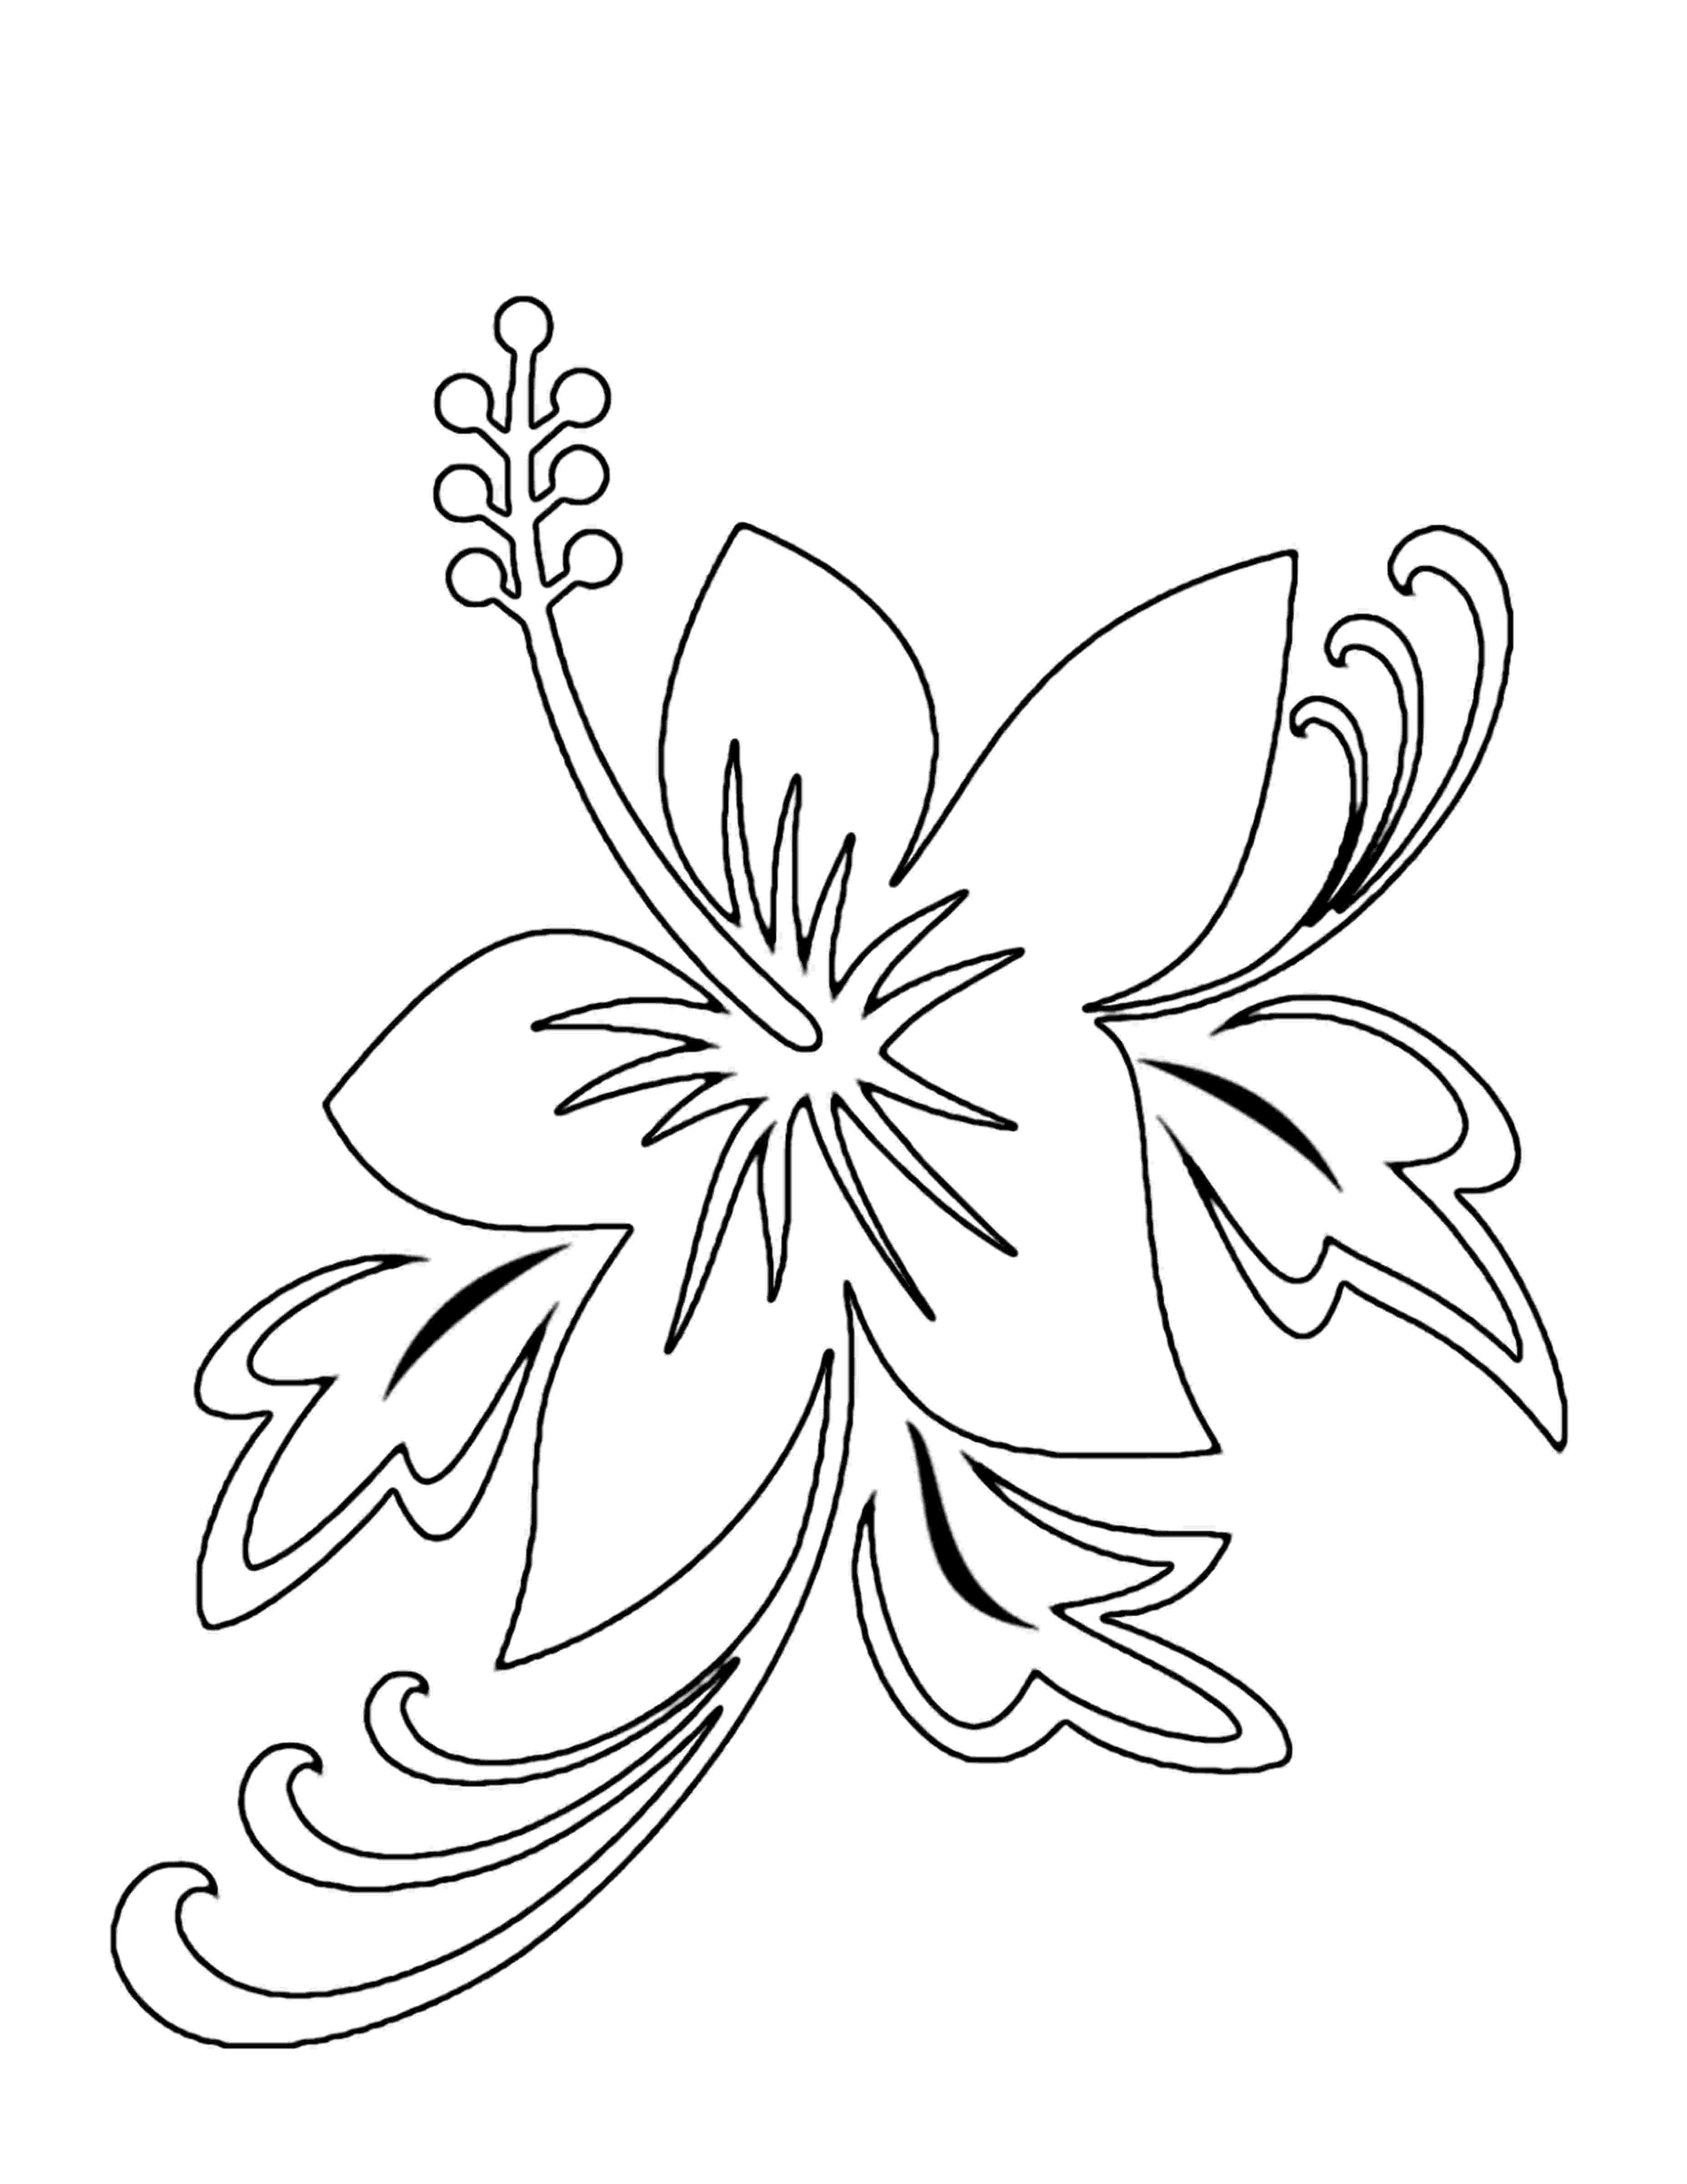 printable coloring pages plants free printable flower coloring pages for kids best plants coloring printable pages